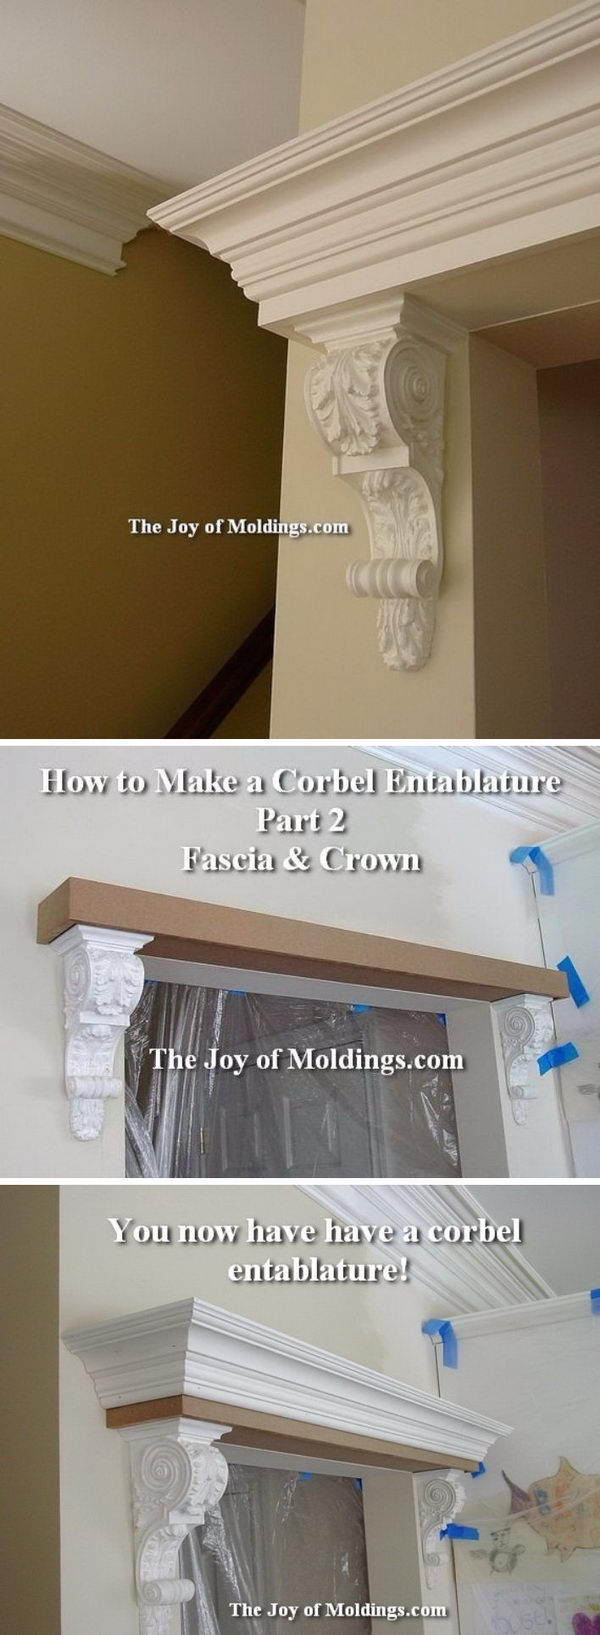 Upgrade Your Home with Architectural Corbels.